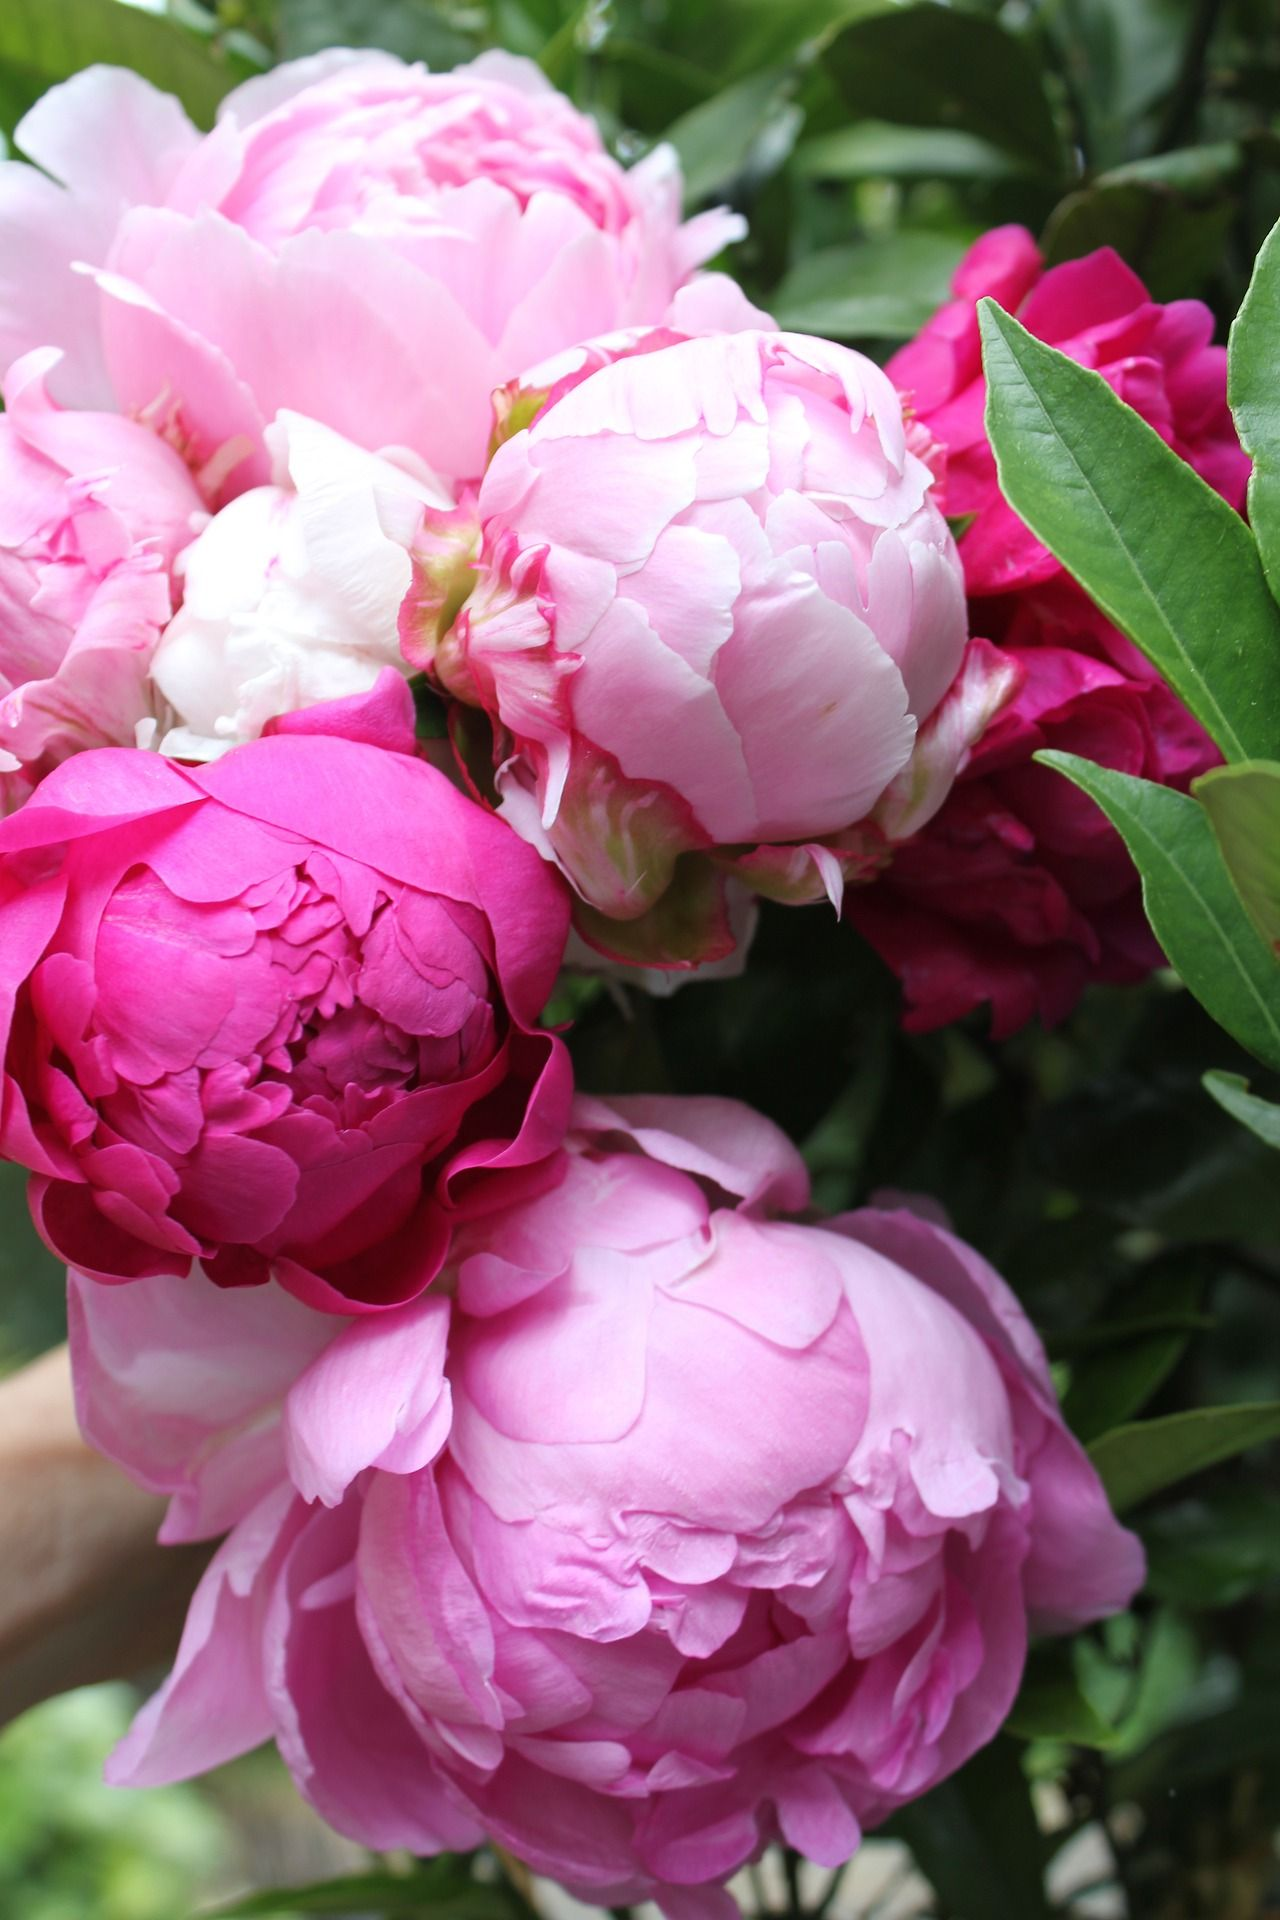 shades of pink peonies flowers